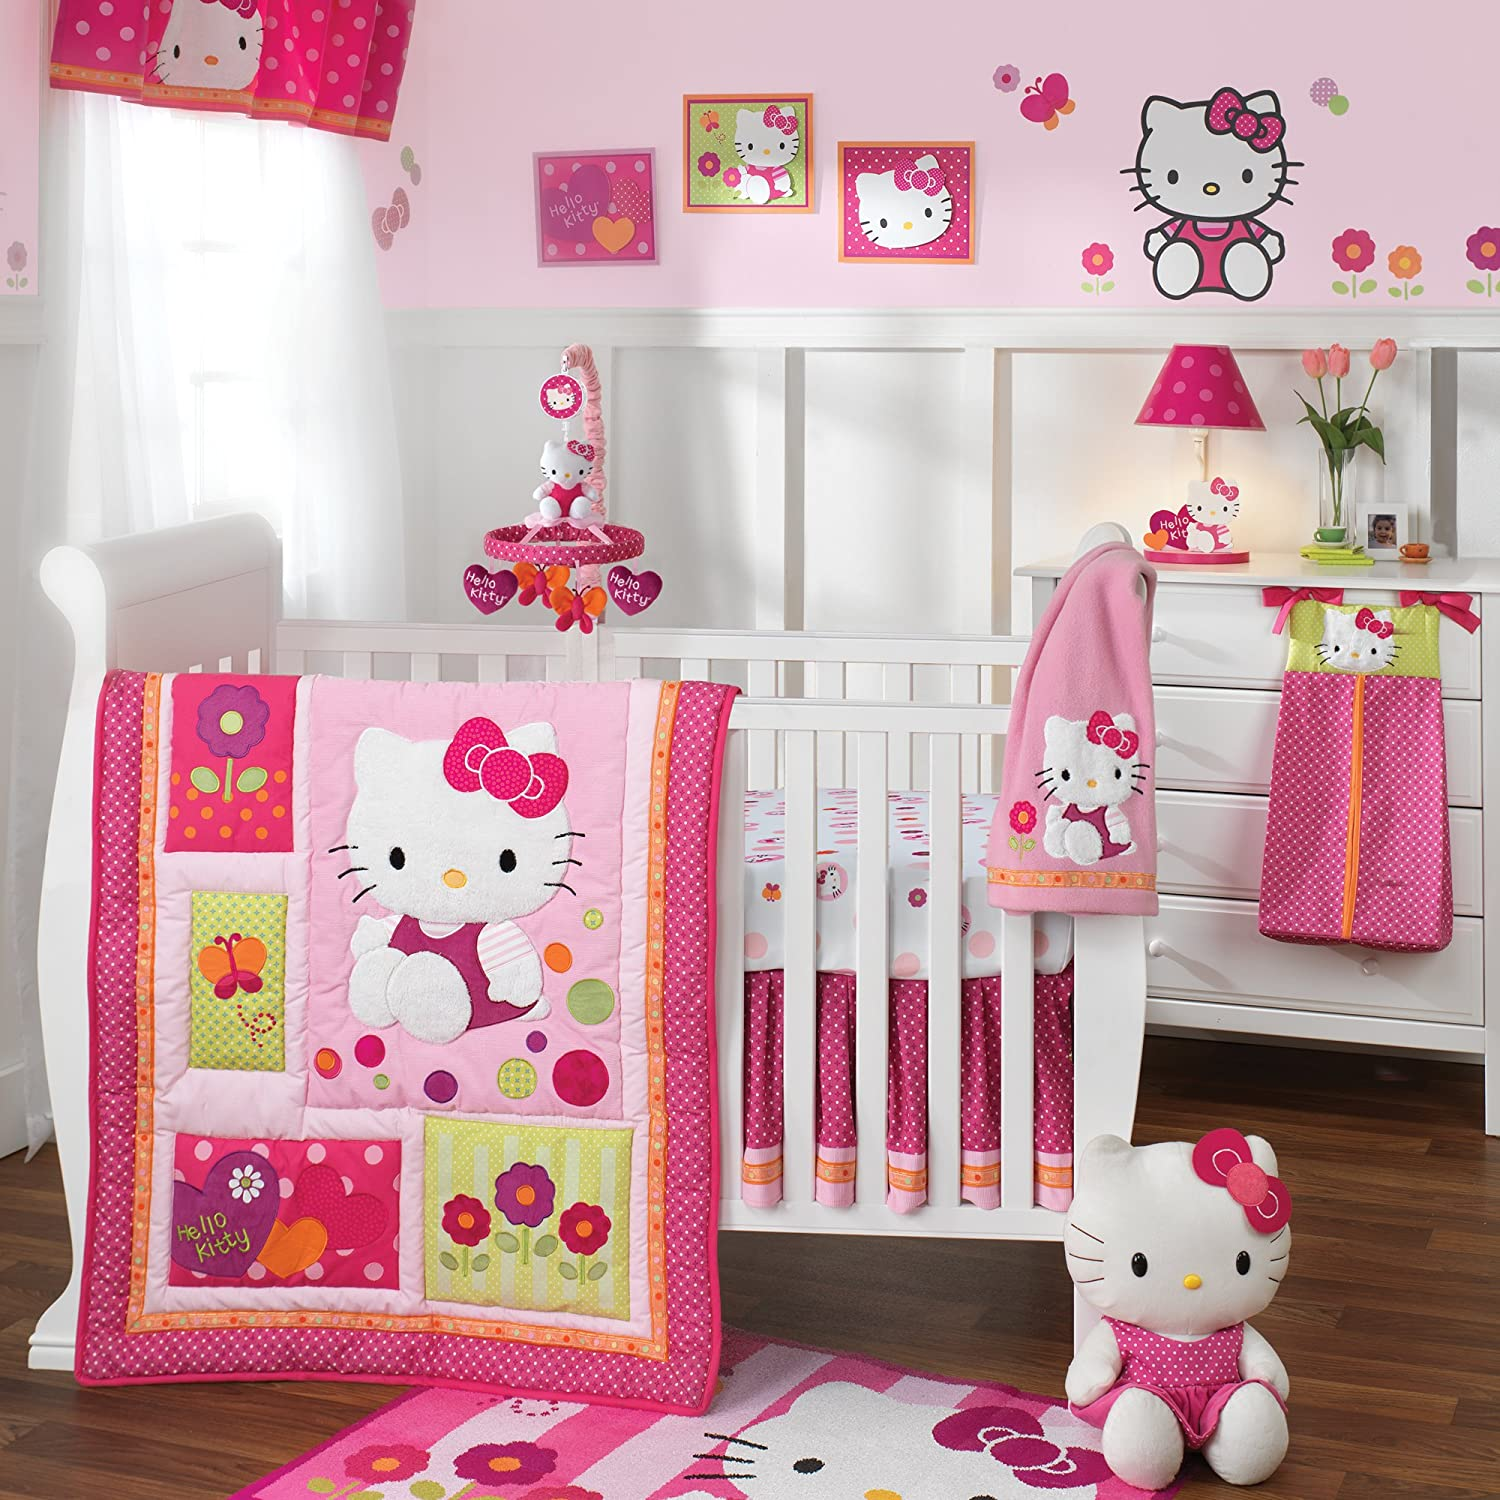 Hello kitty crib for sale - Amazon Com Lambs Ivy Hello Kitty Garden Lamp Pink Discontinued By Manufacturer Nursery Lamps Baby